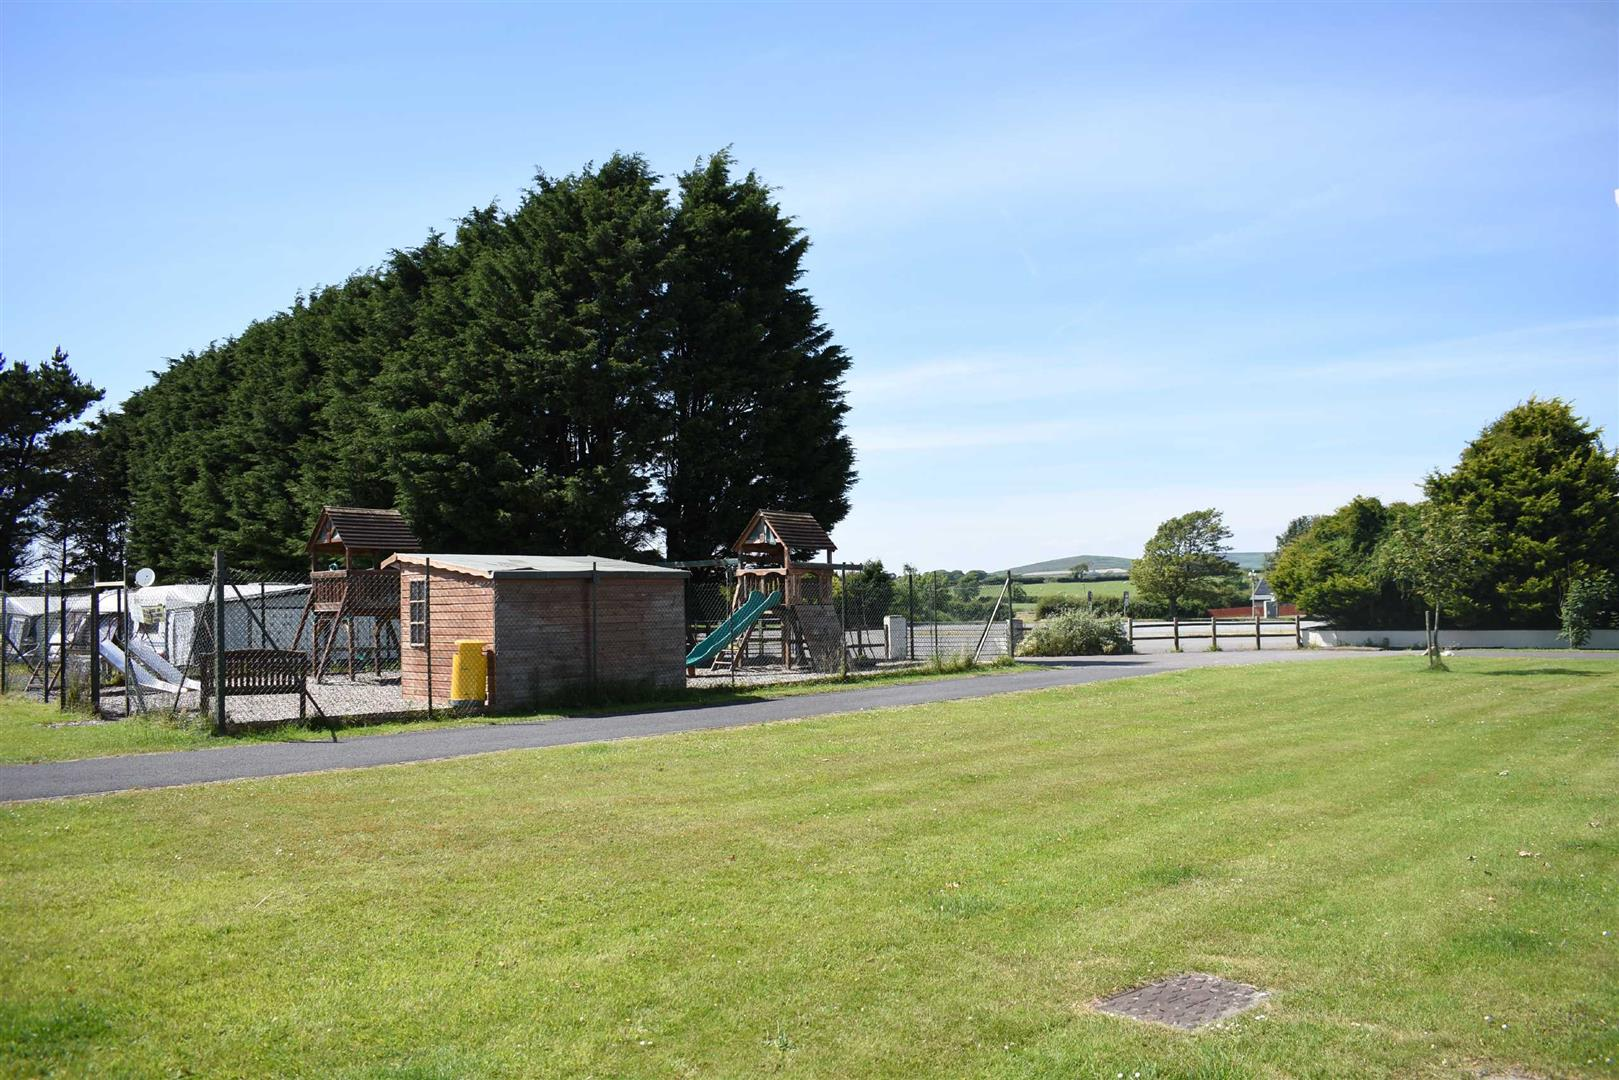 Gower Holiday Village, Scurlage Gower, Swansea, SA3 1AY